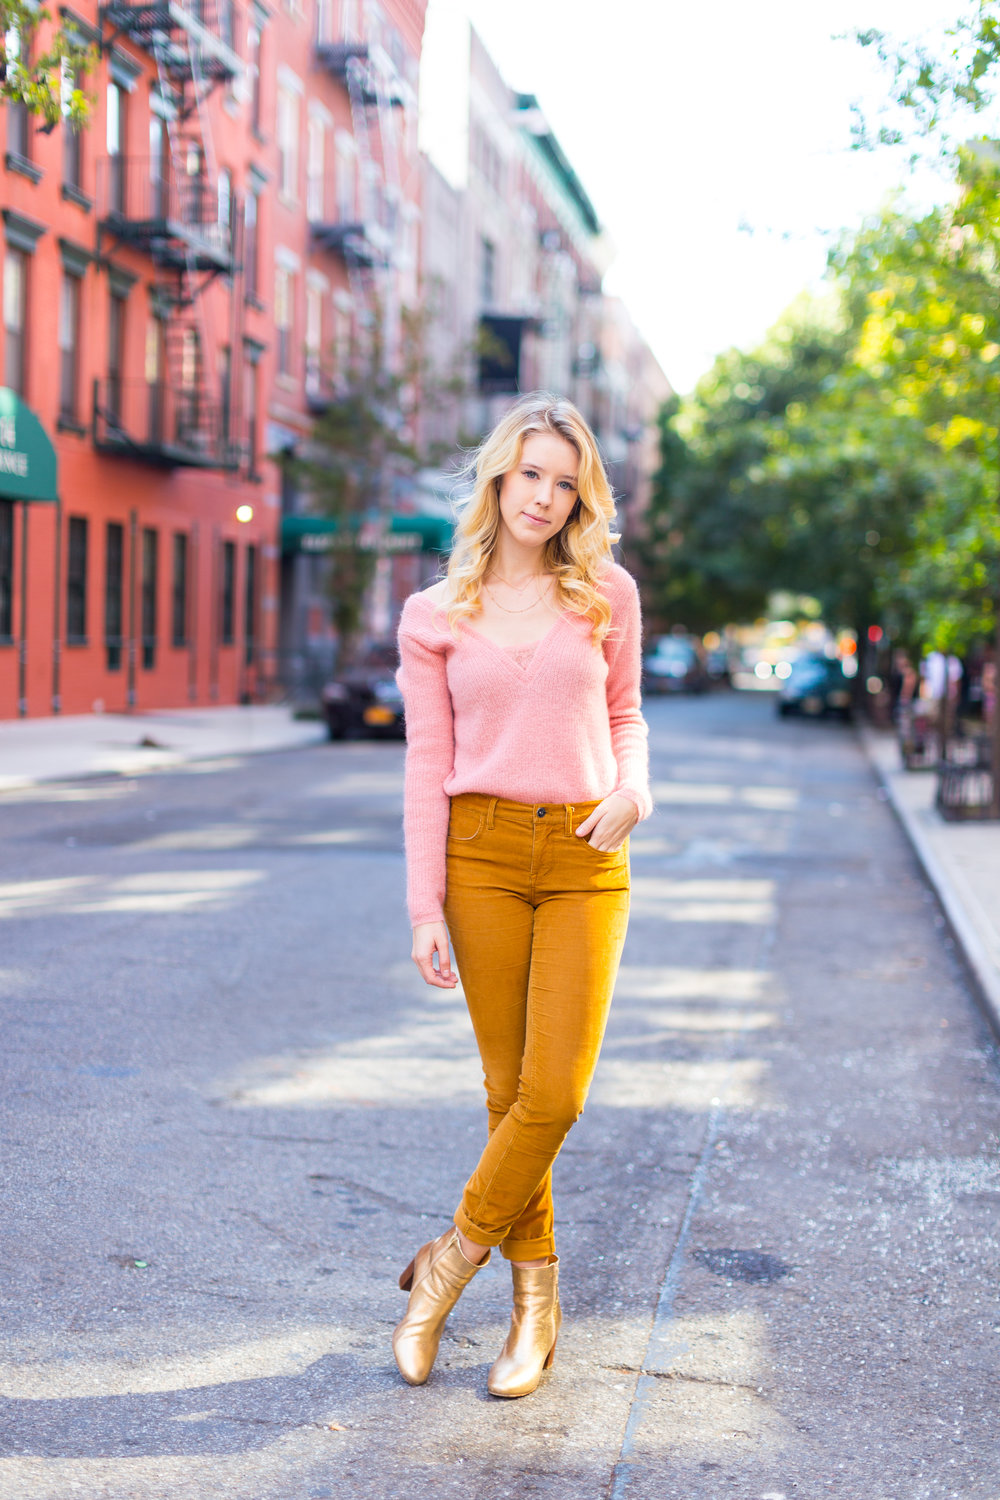 Fall Fashion Pink Sweater and Gold Pants.jpg